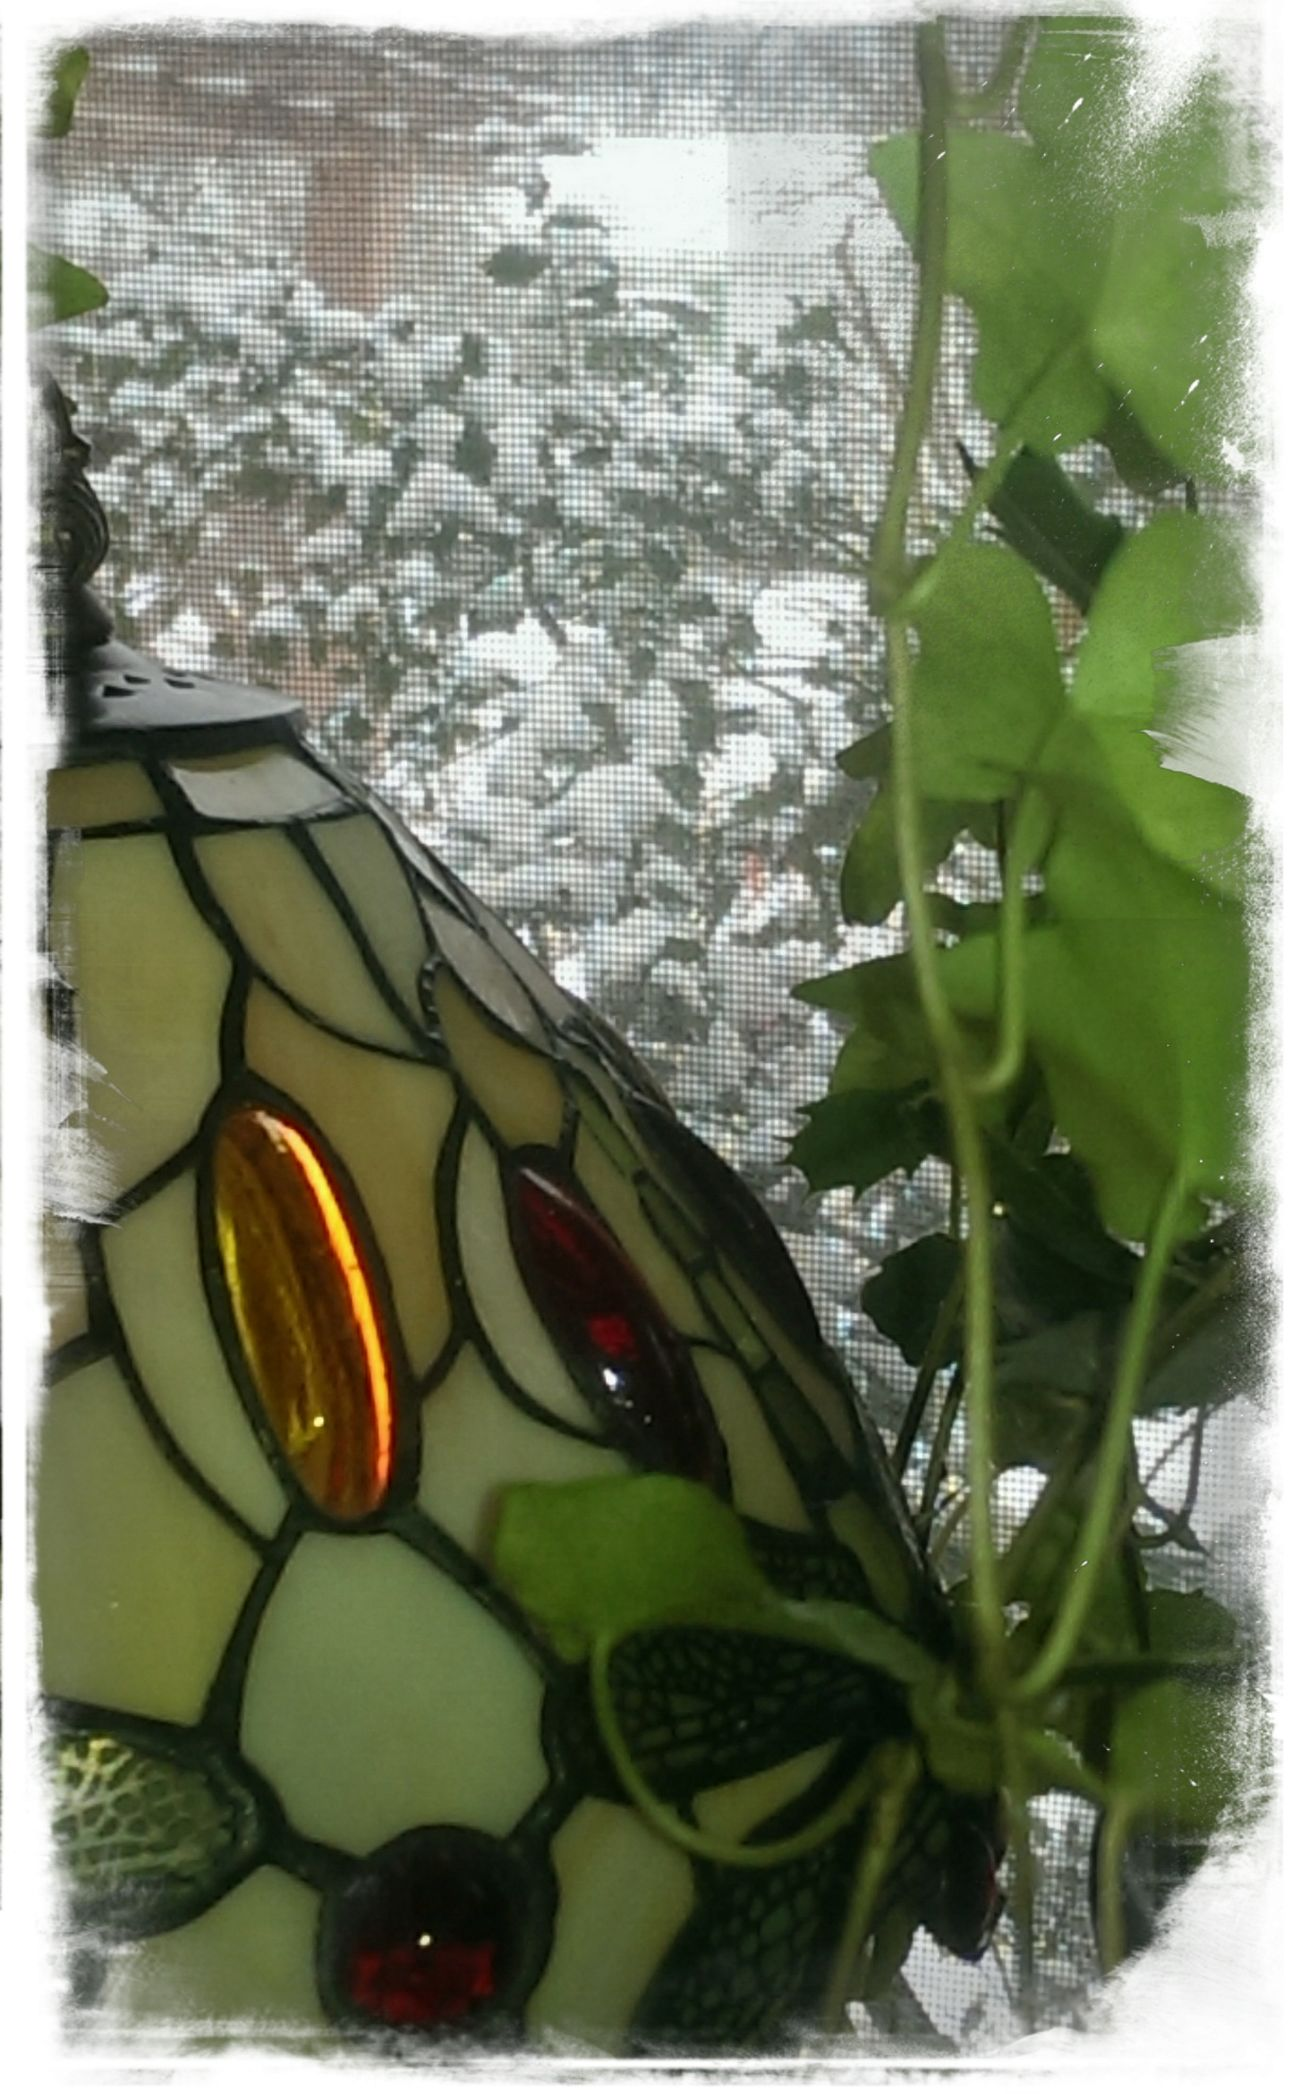 Just woke and see what I see this morning out my front window. Check This Out Hello World Letitsnowletitsnowletitsnow